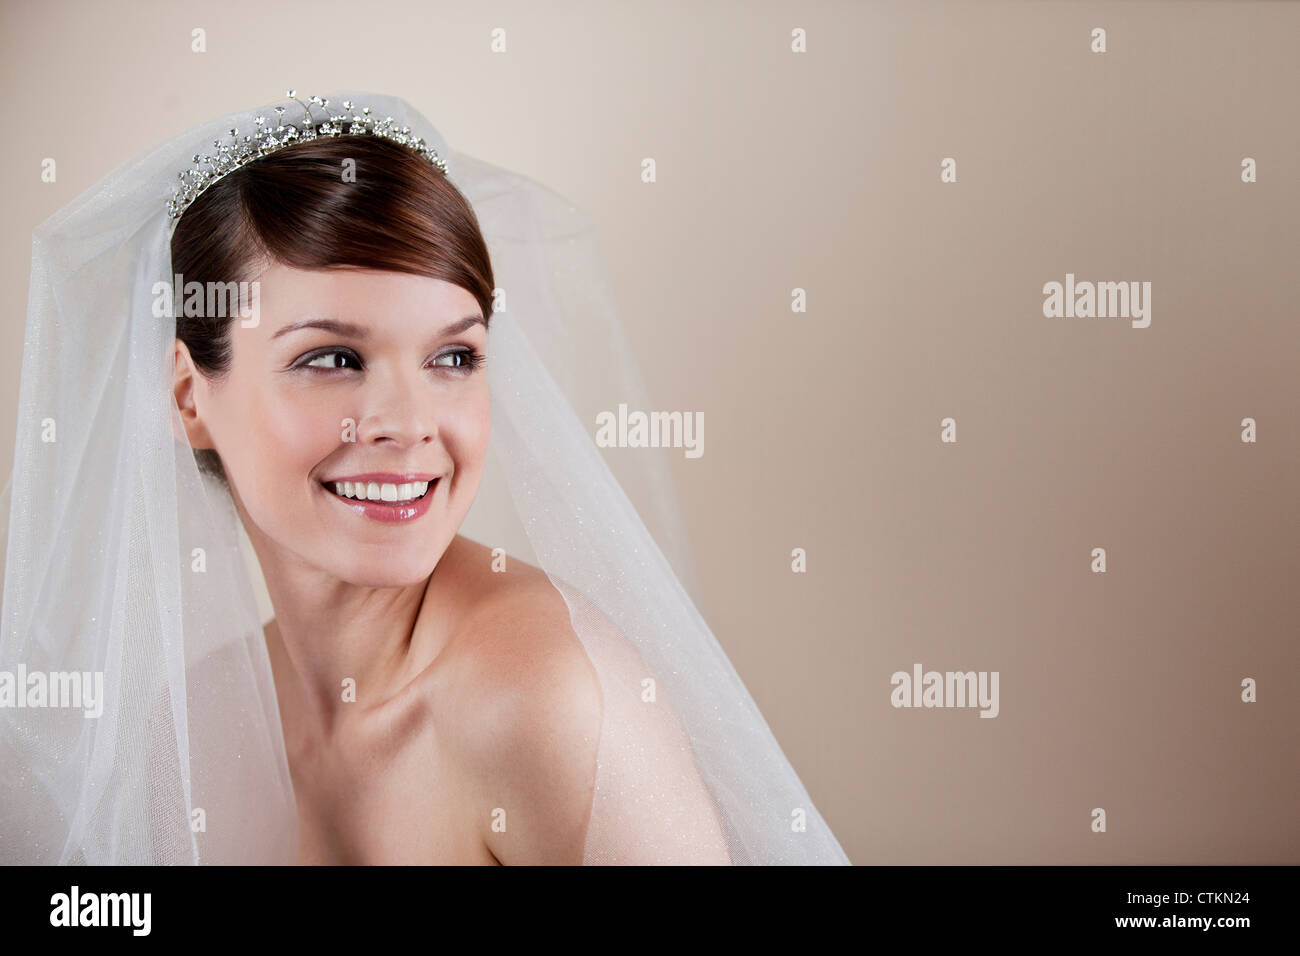 A young bride wearing a tiara and veil, looking to the side Stock Photo